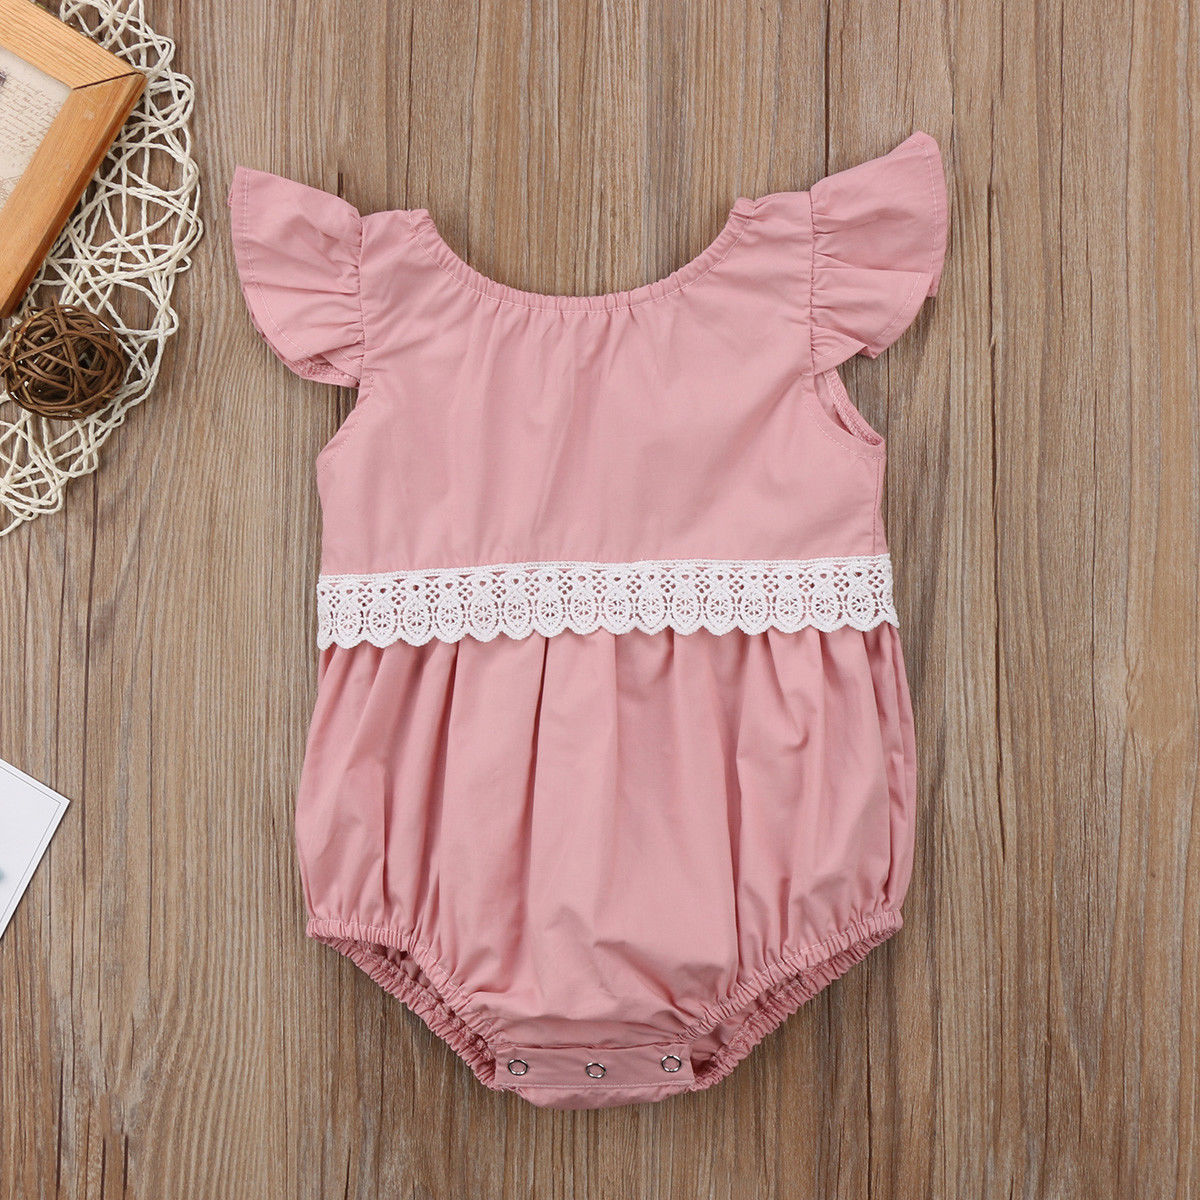 Newborn Kid Baby Girl Clothes Lace Jumpsuit  Bodysuit Sunsuit Outfit Set N